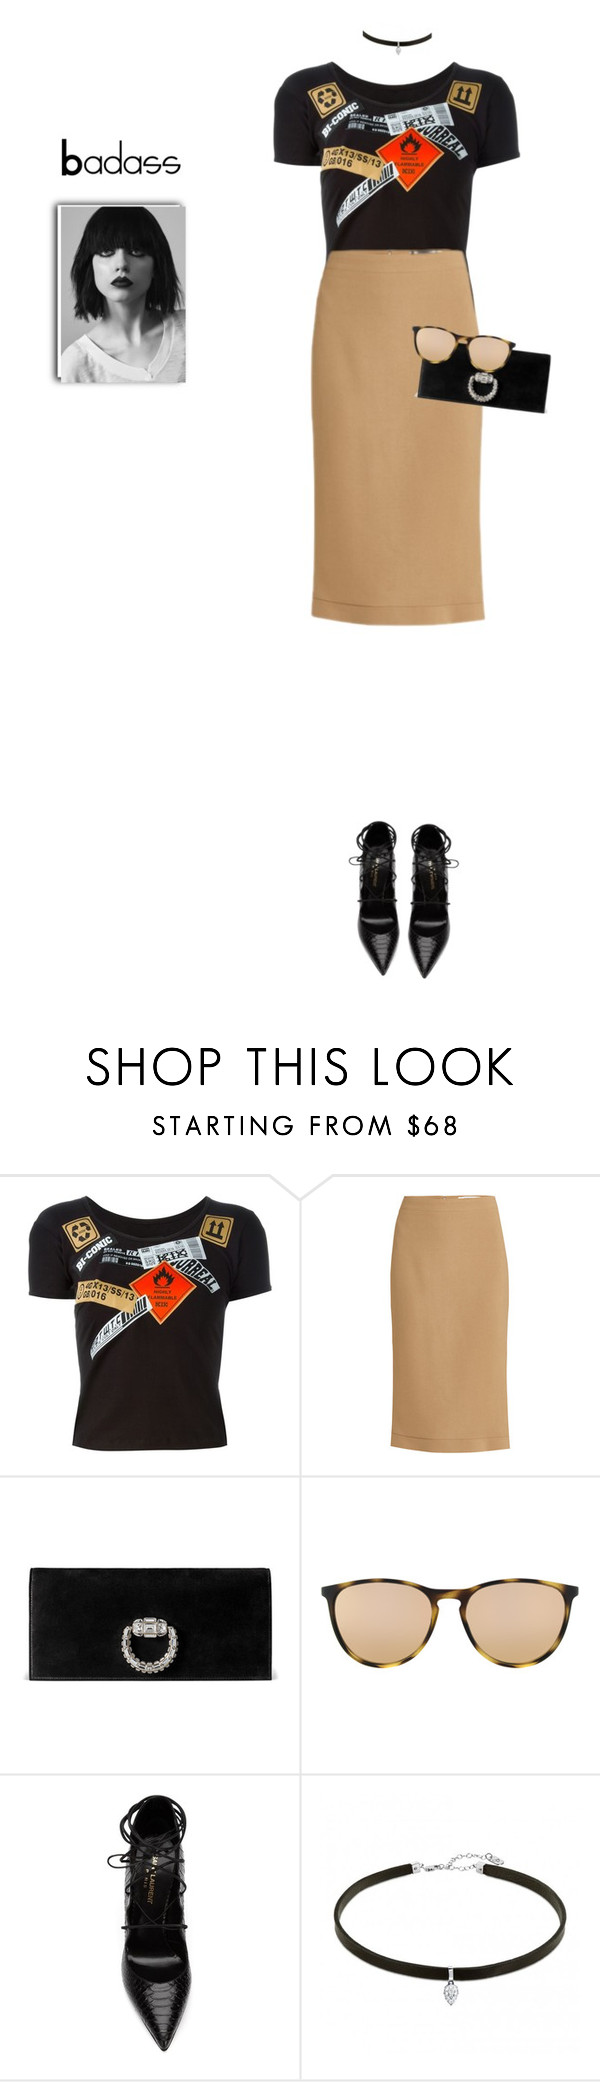 """Something new for Me. (I could not pull this off lol)"" by aishademartino ❤ liked on Polyvore featuring Kokon To Zai, Givenchy, Gucci, Ray-Ban and Yves Saint Laurent"